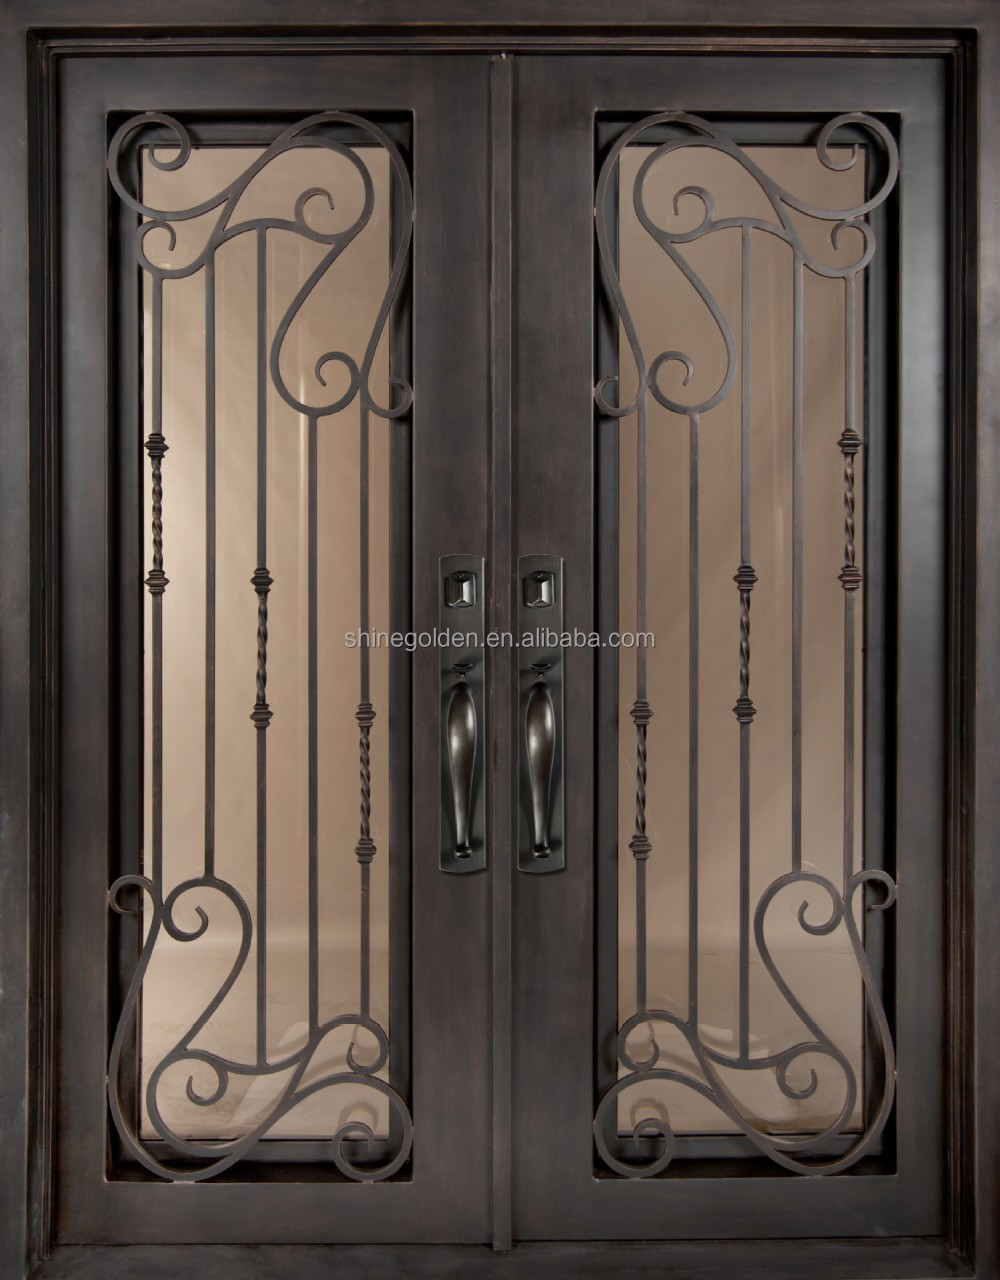 Customized wrought iron door with tempered glass SG-15D036